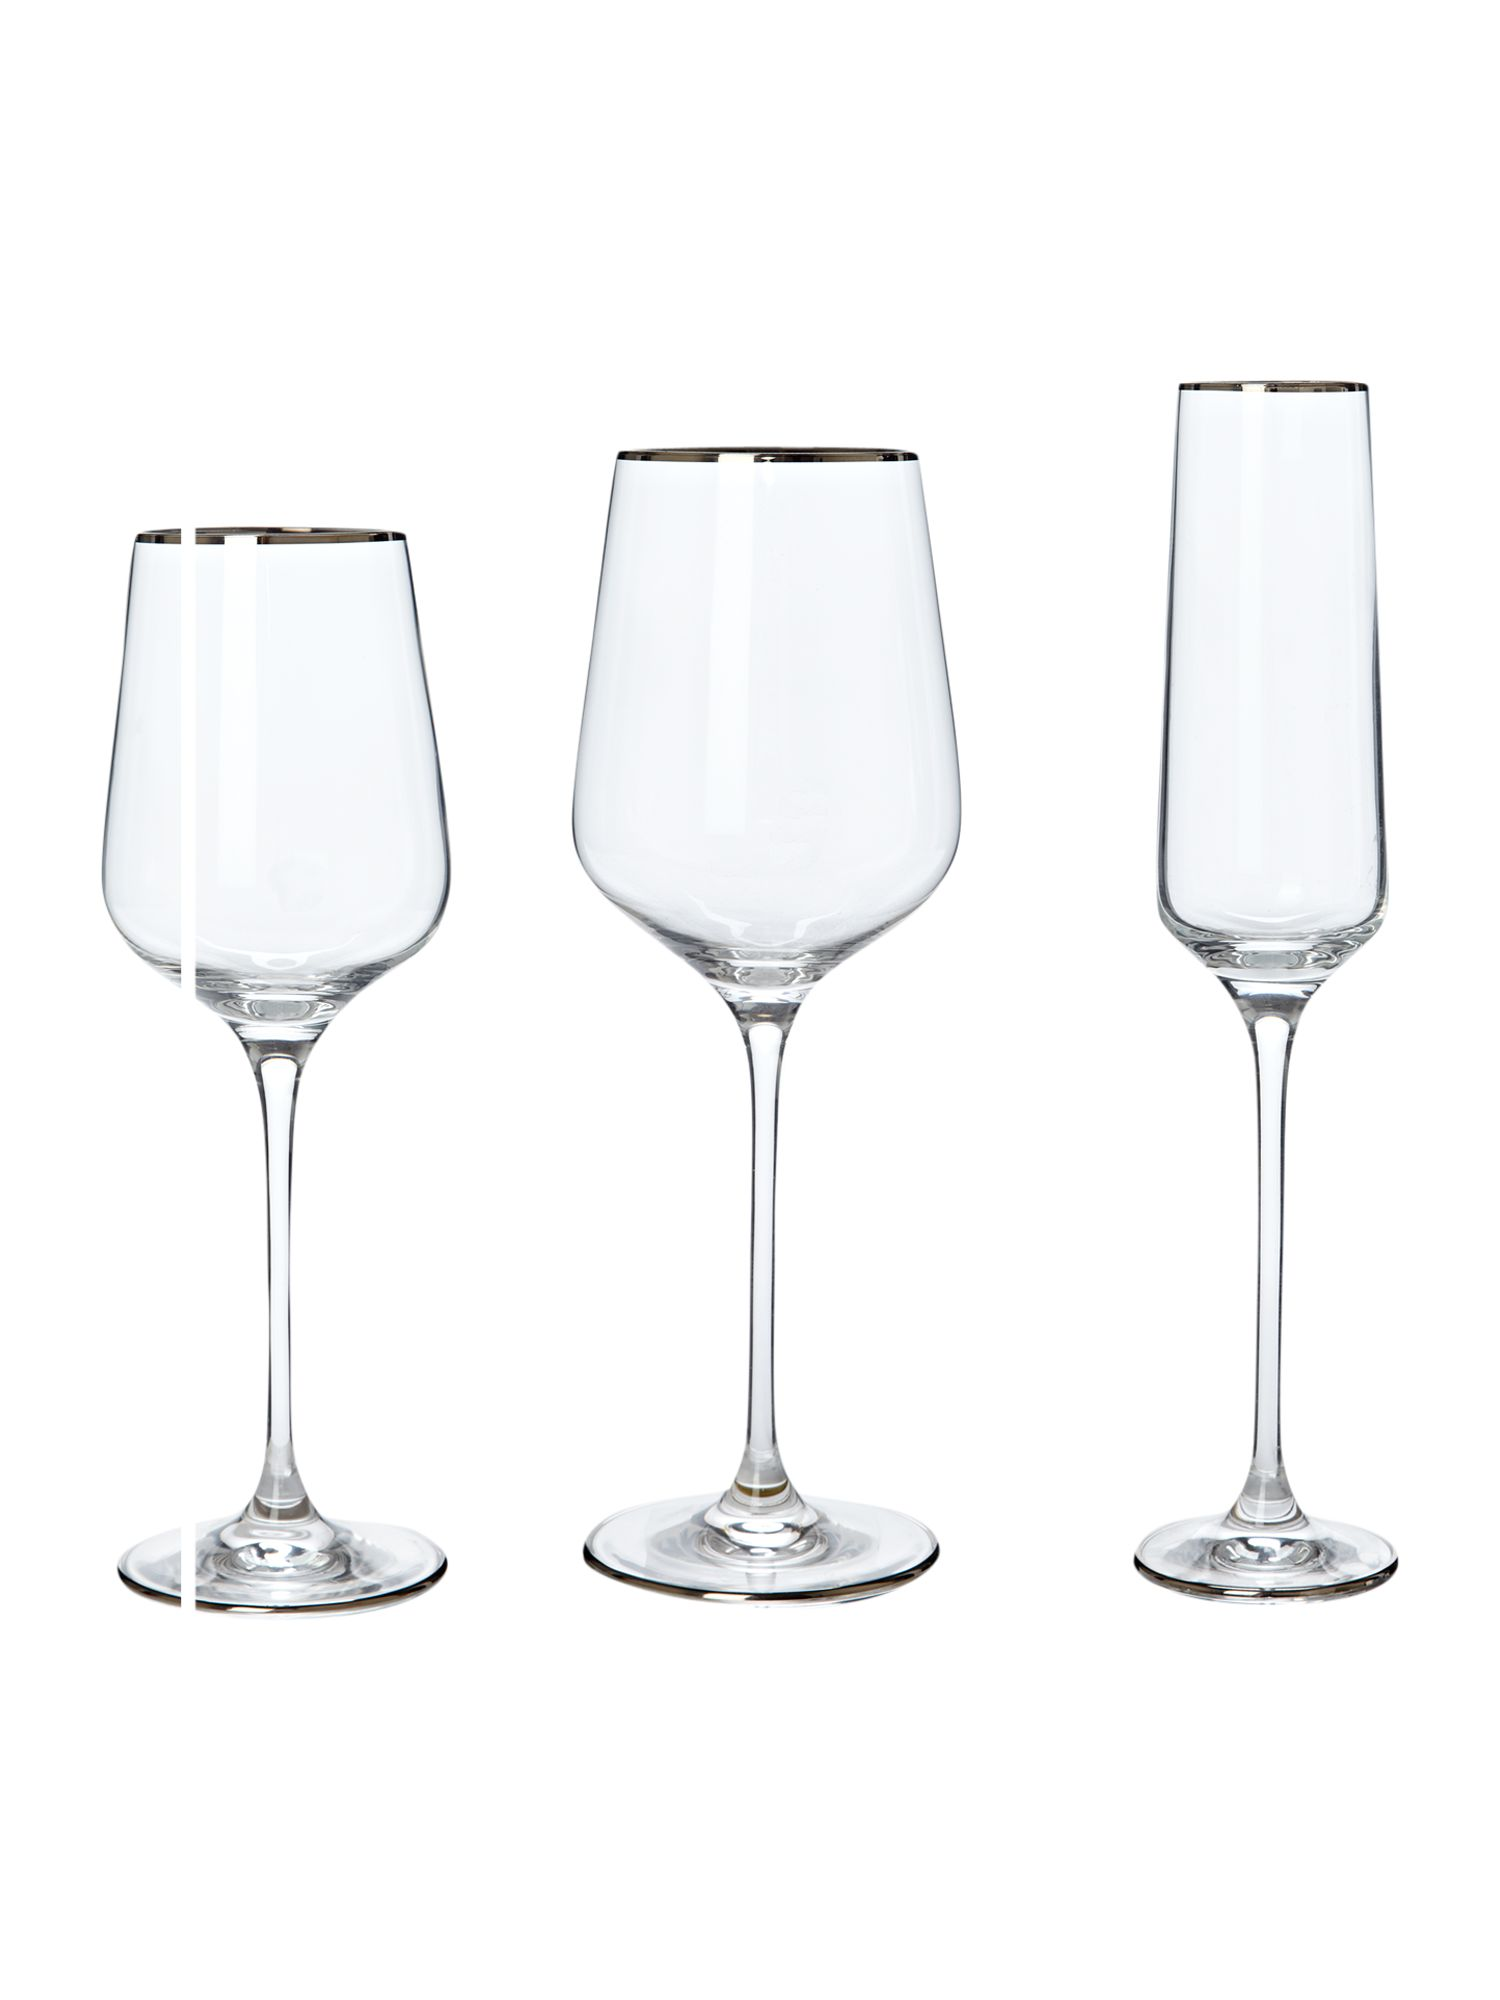 Platinum band glassware